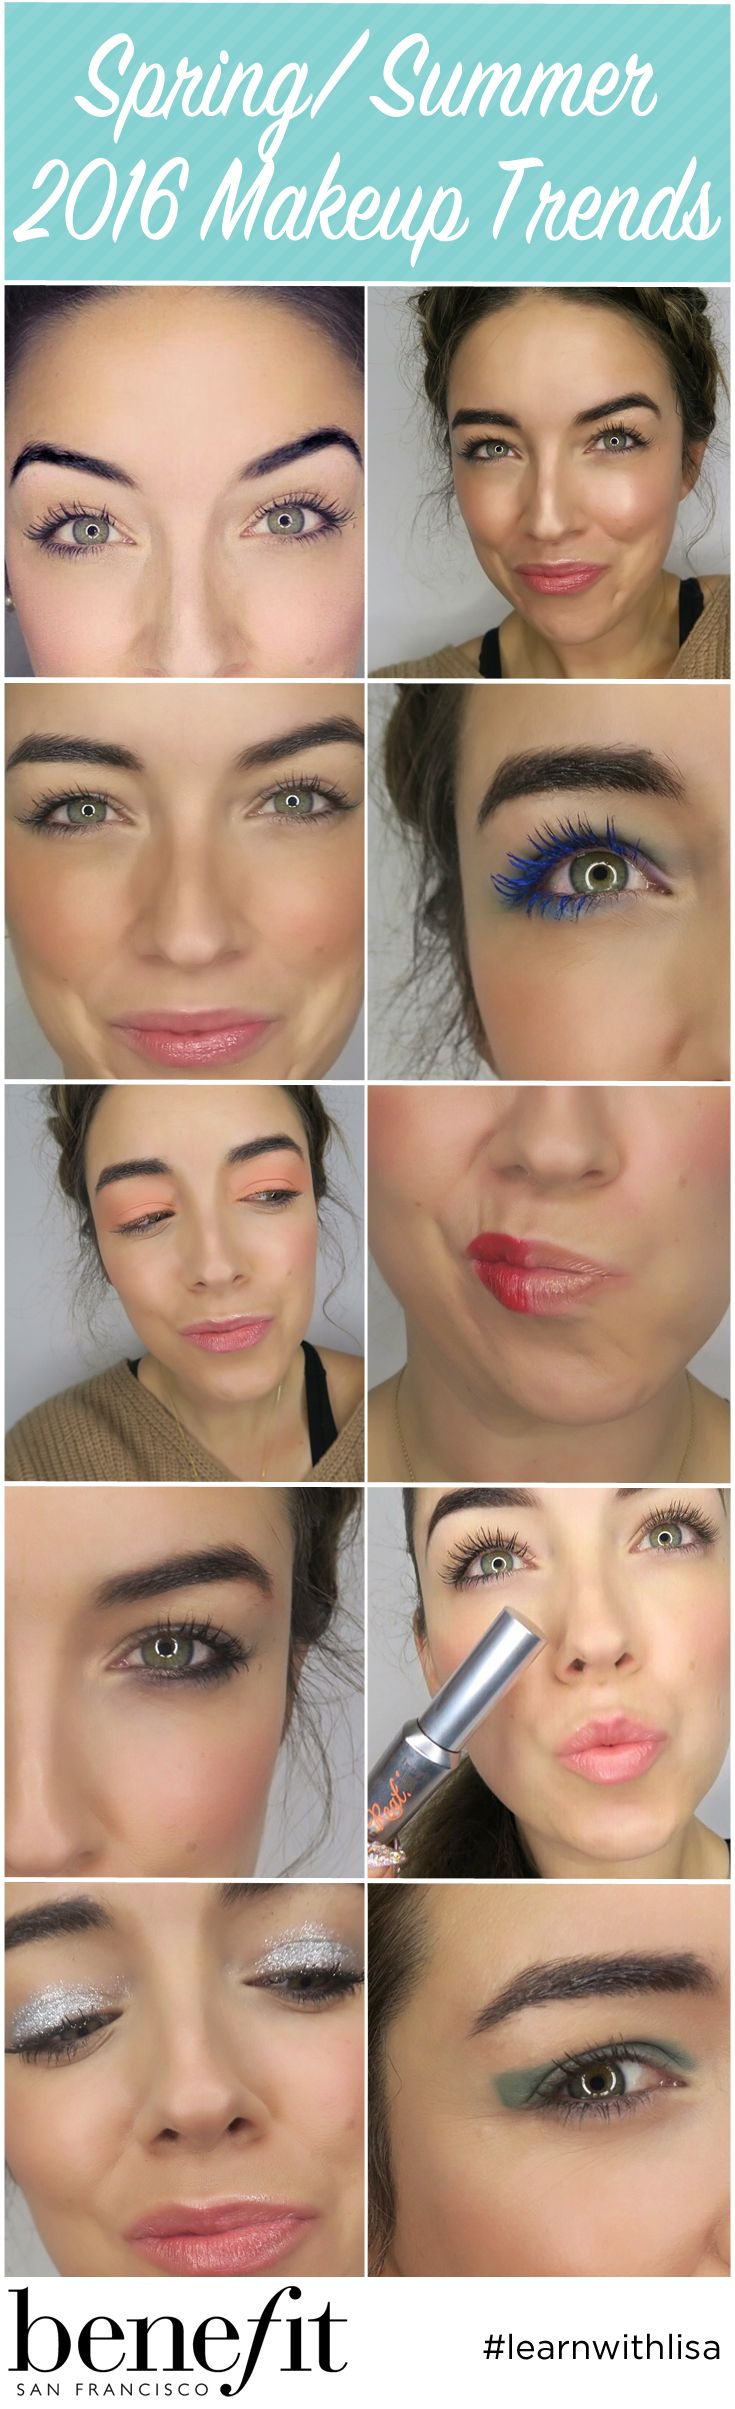 We are so excited for Spring/ Summer with these makeup trends! 1/ bold brows 2/ Modern Mermaid 3/ Sun Stripping 4/ Blue Eyes 5/ Sunset Eyes 6/ The lip Debate 7/ 90's Liner 8/ Beyond Lashes 9/ Glitter Eyes 10/ Colour Block Eyes